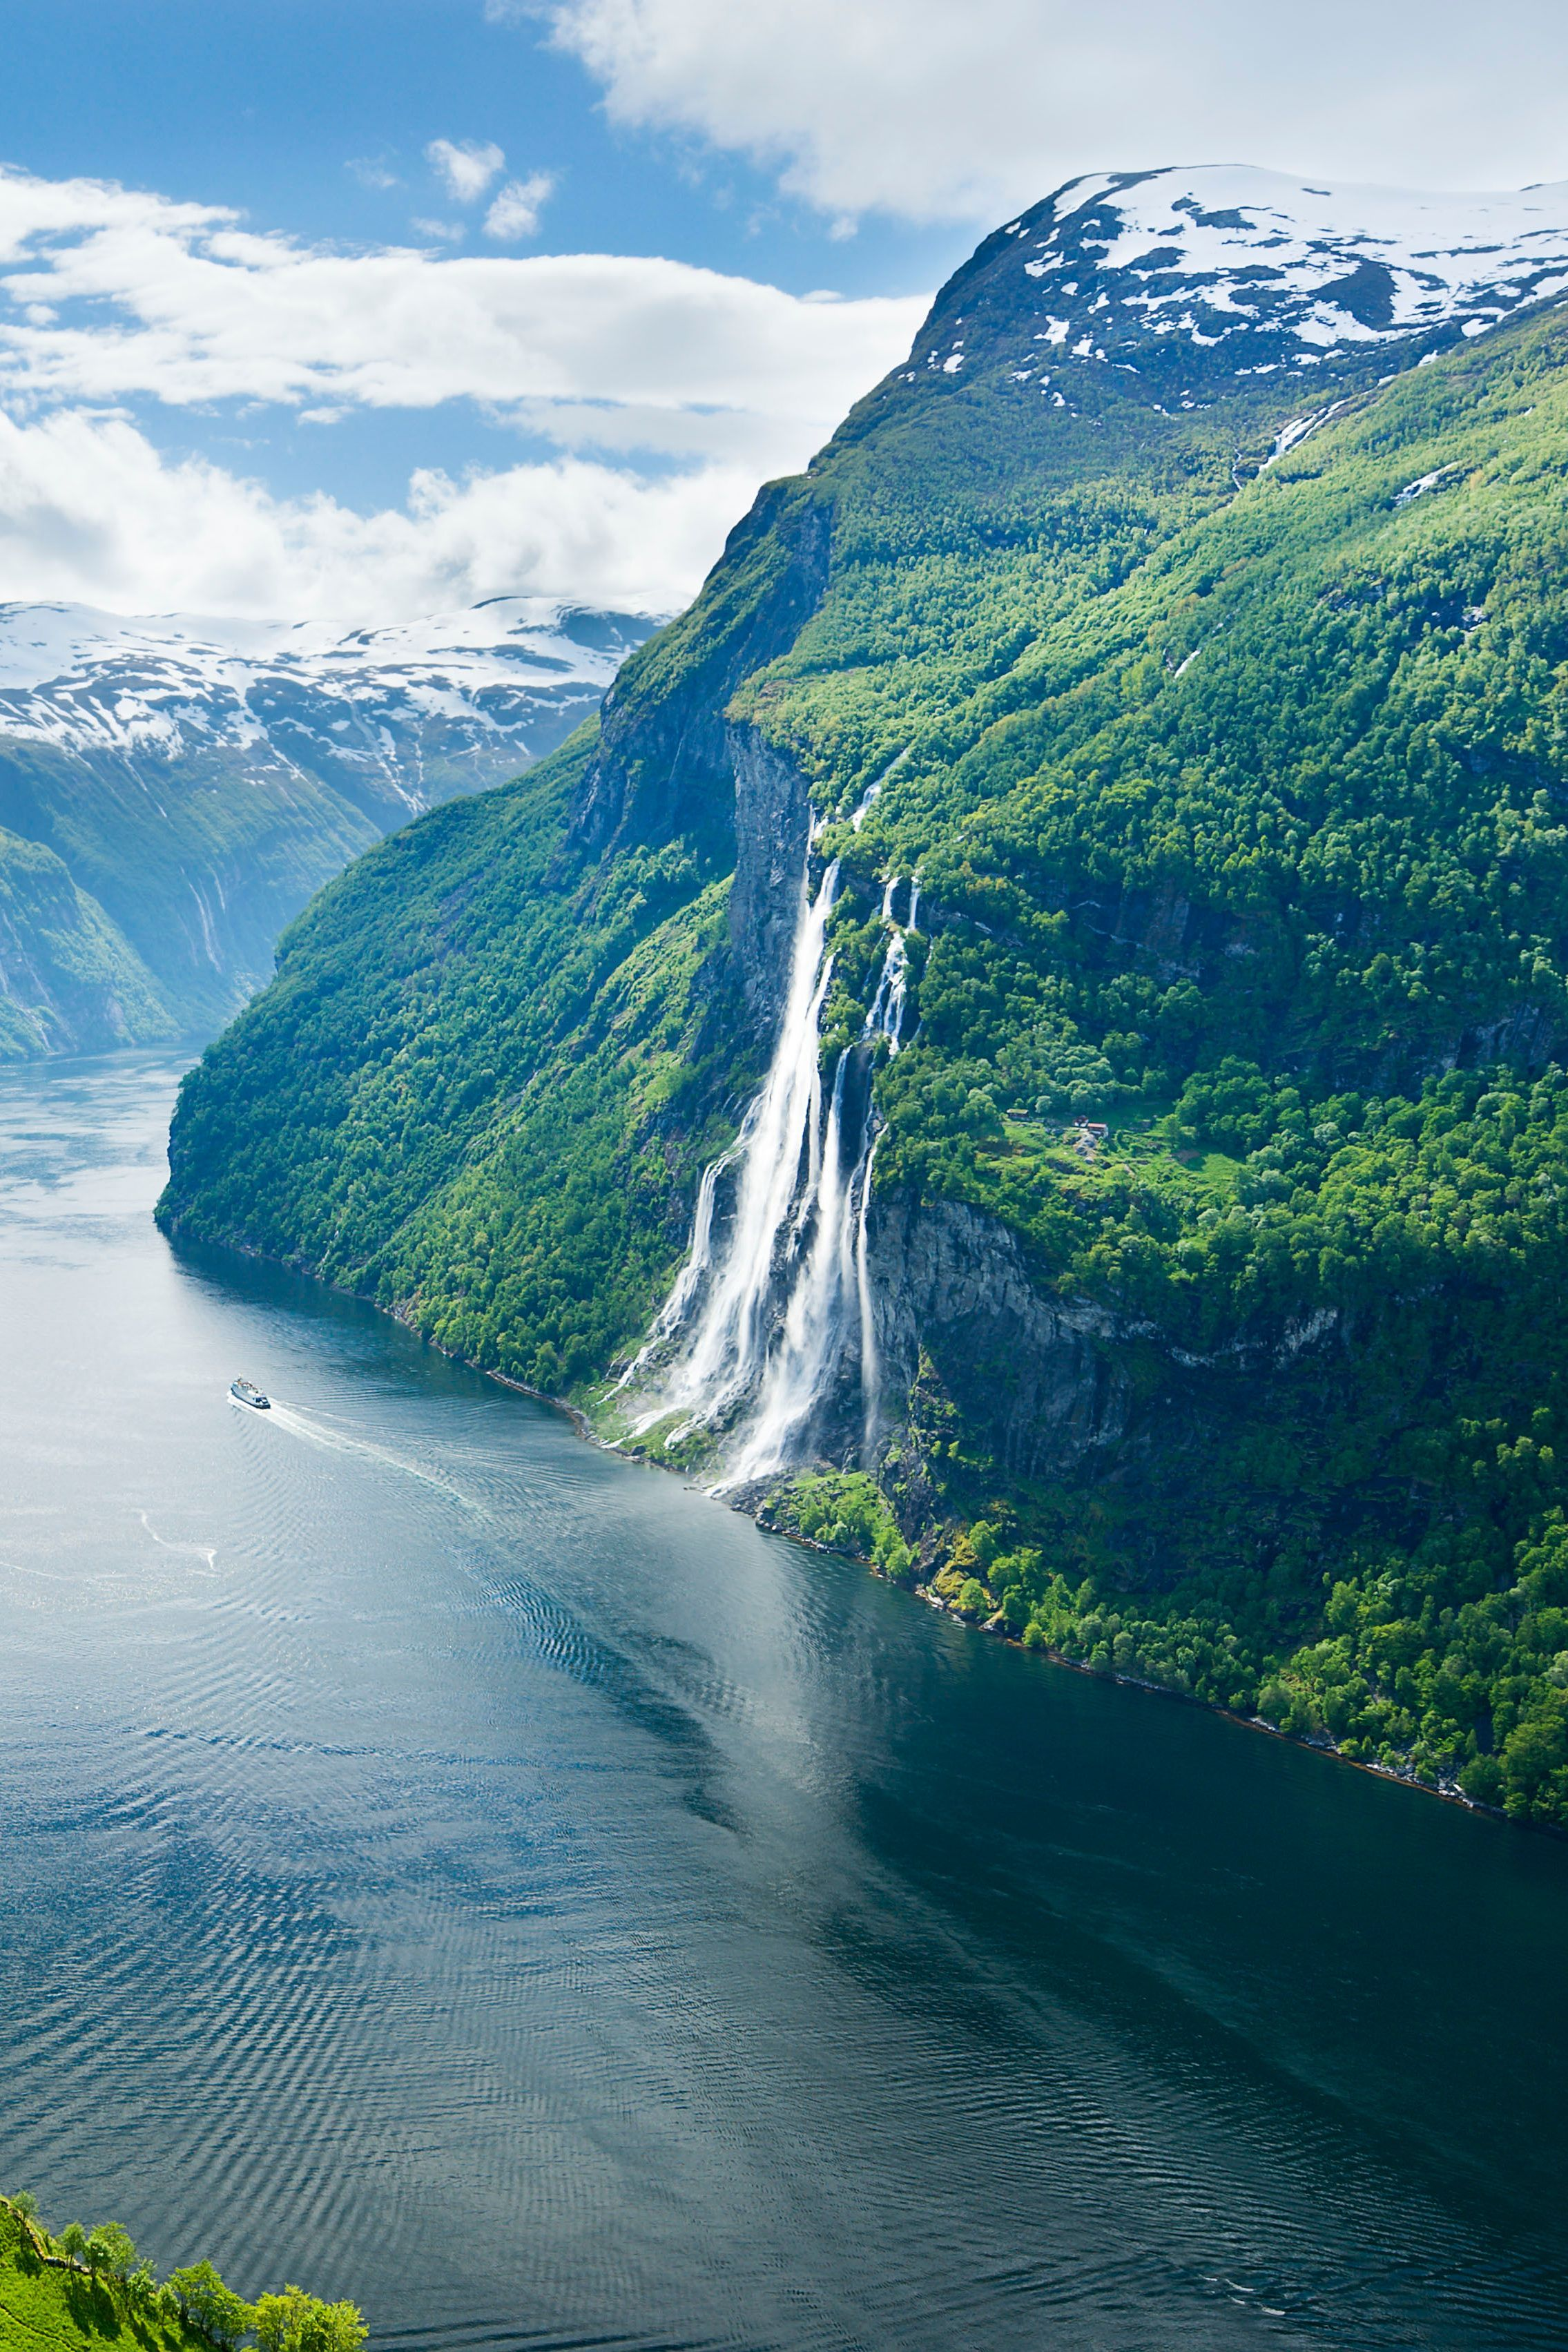 Geirangerfjord, one of Norway's most dramatic fjords, and the Seven Sisters waterfall, as shot by Justin Foulkes #norway #waterfall #fjord